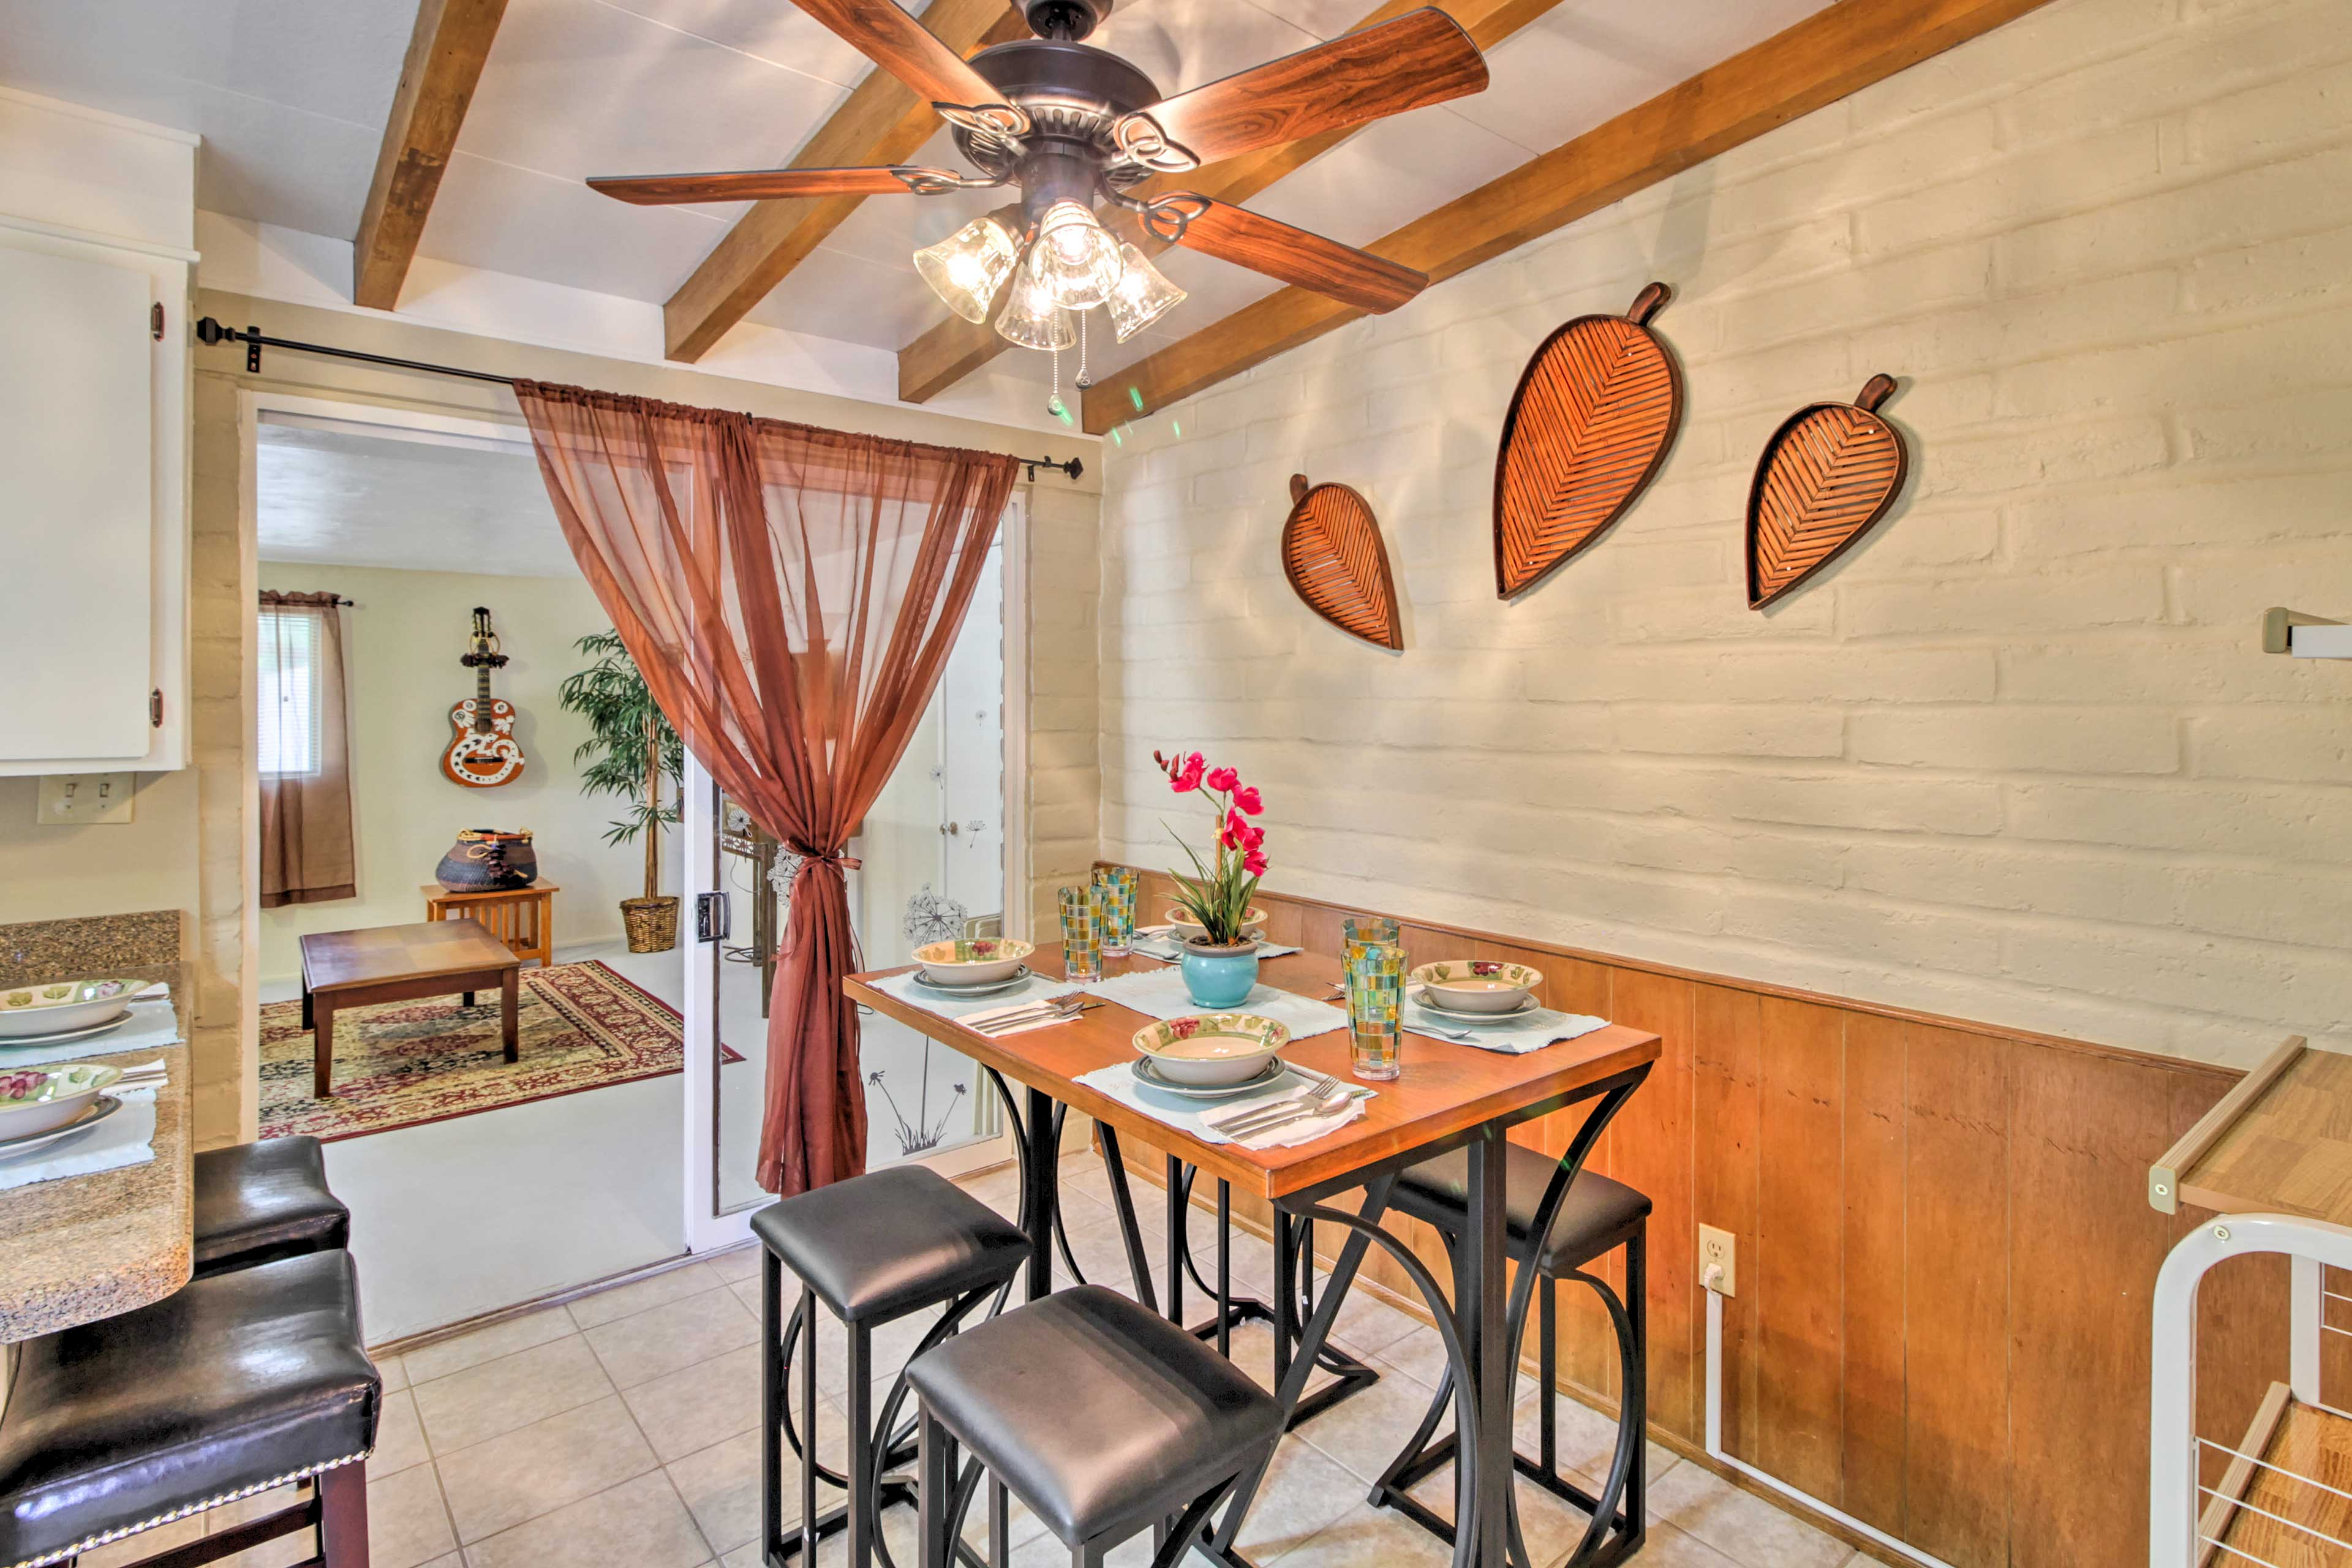 Savor family meals around the 4-person dining table.